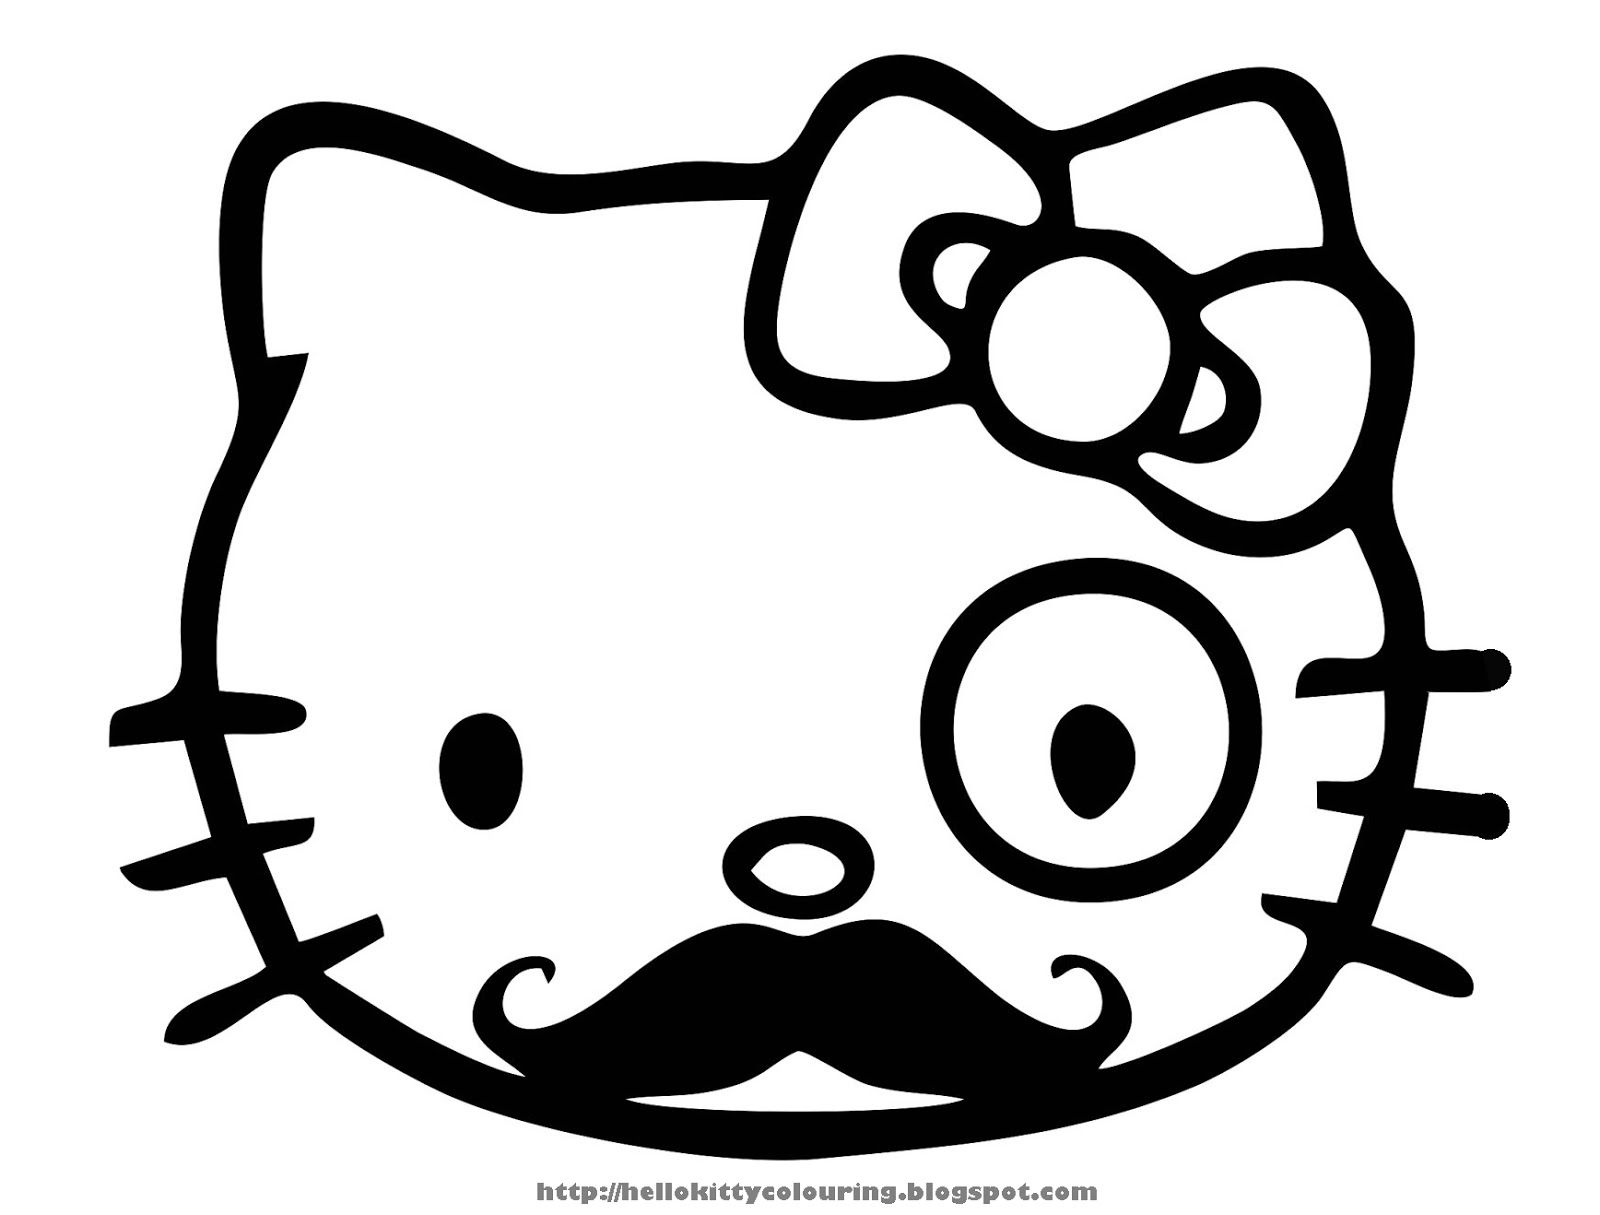 Hello kitty coloring book pages to print - As With Most Of The Other Hello Kitty Coloring Pages The Sheet Is Made With